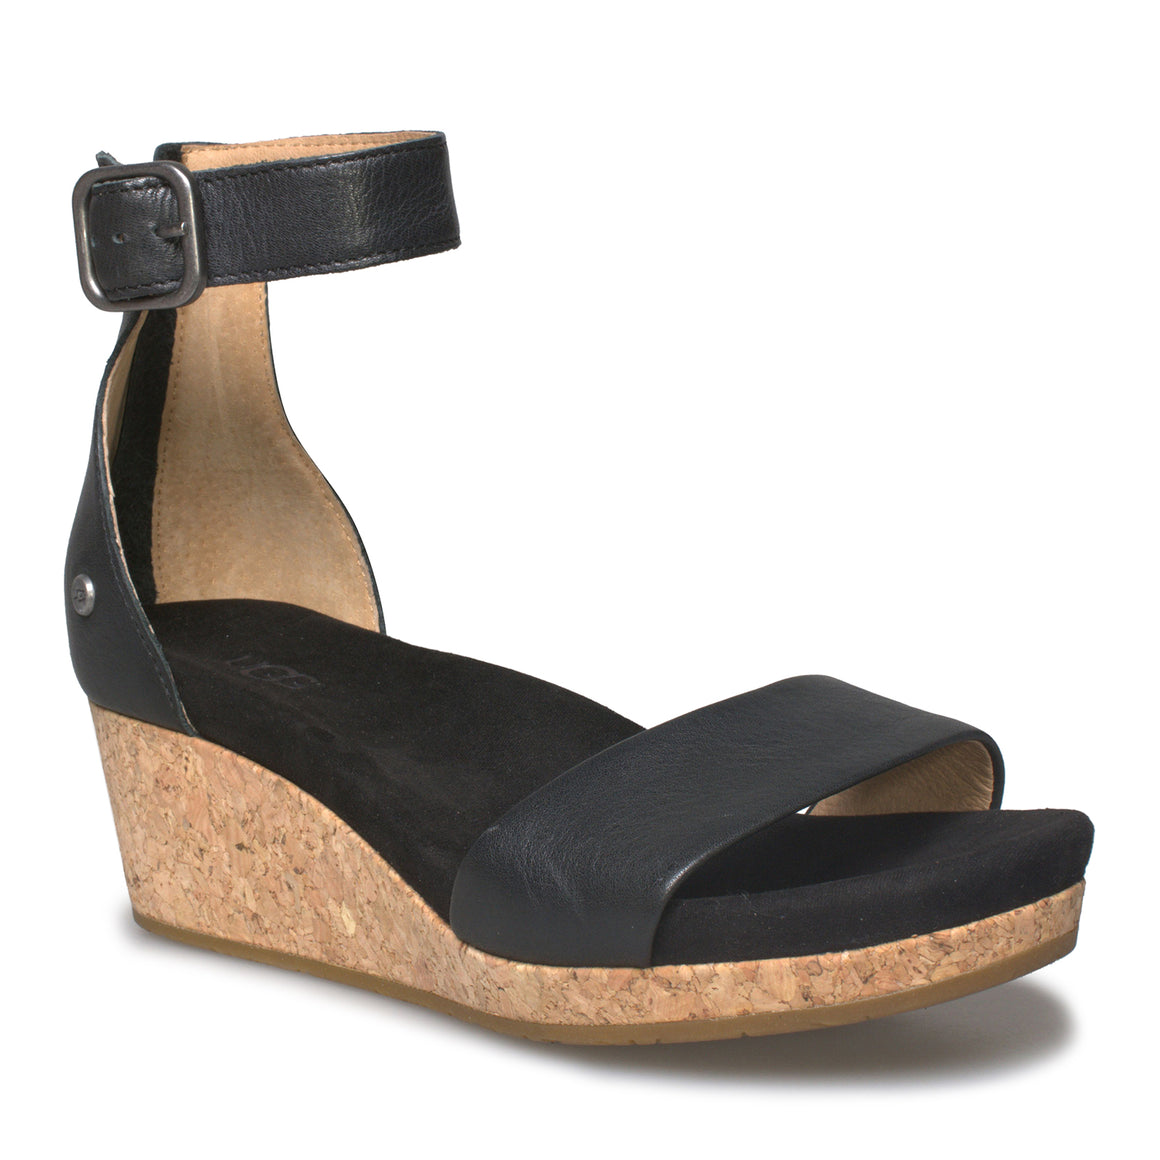 UGG Zoe II Black Sandals - Women's